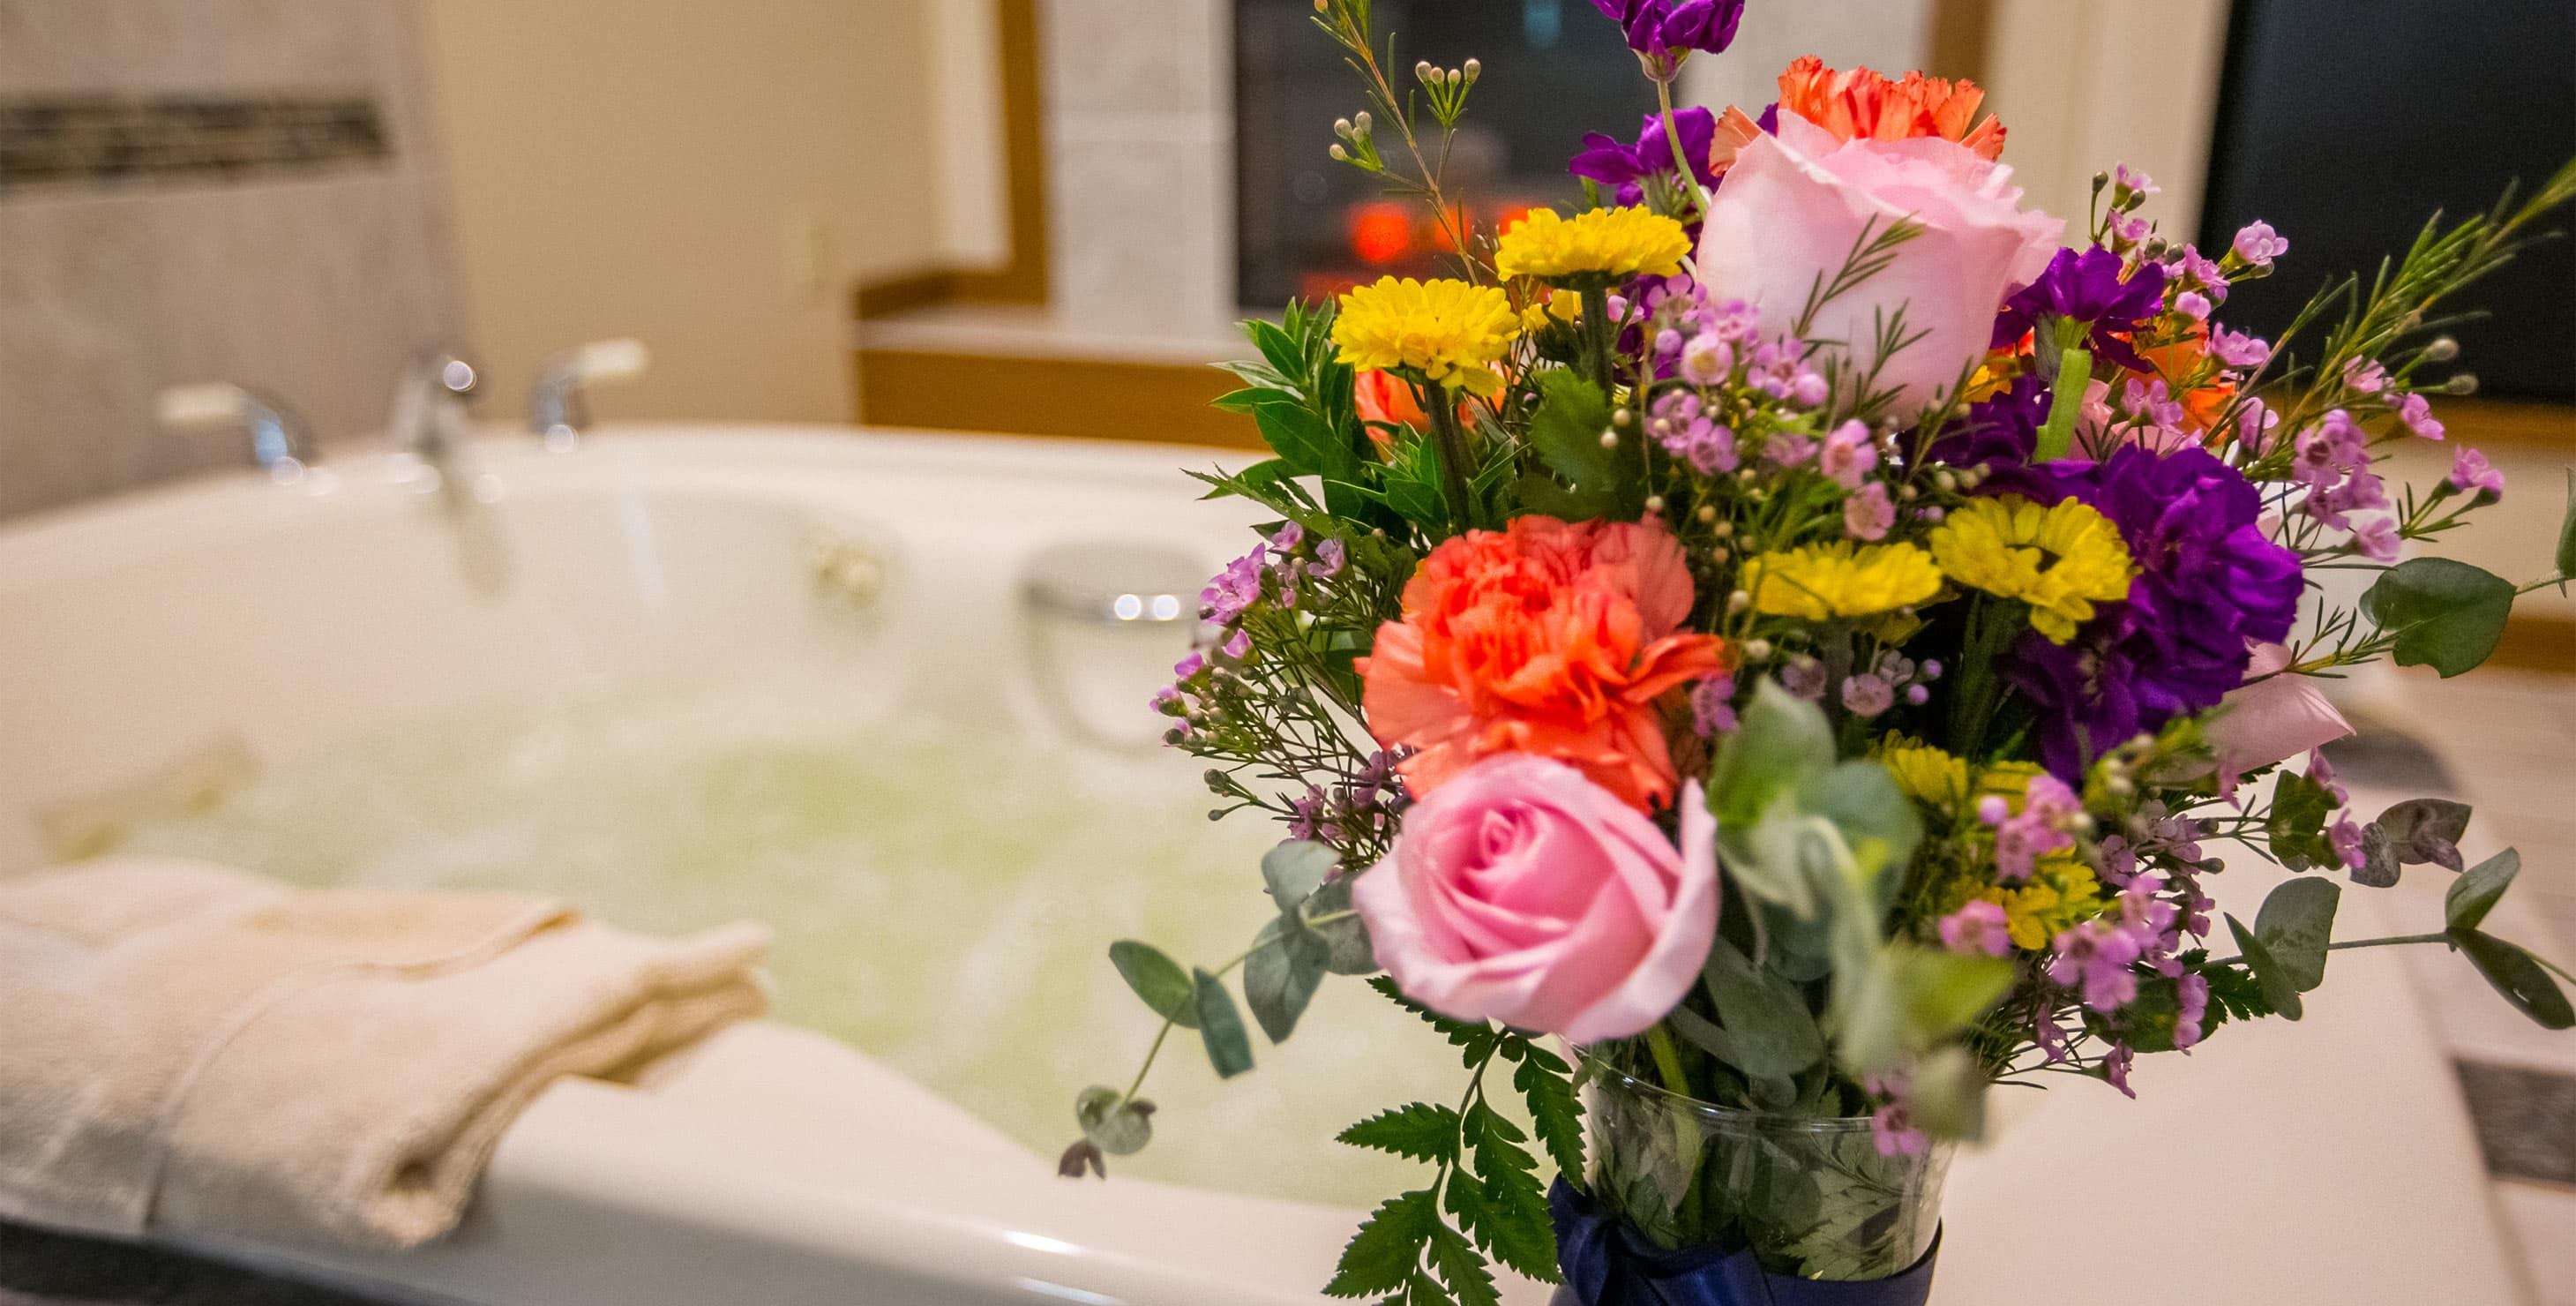 Flower Bouquet in front of a Jetted tub